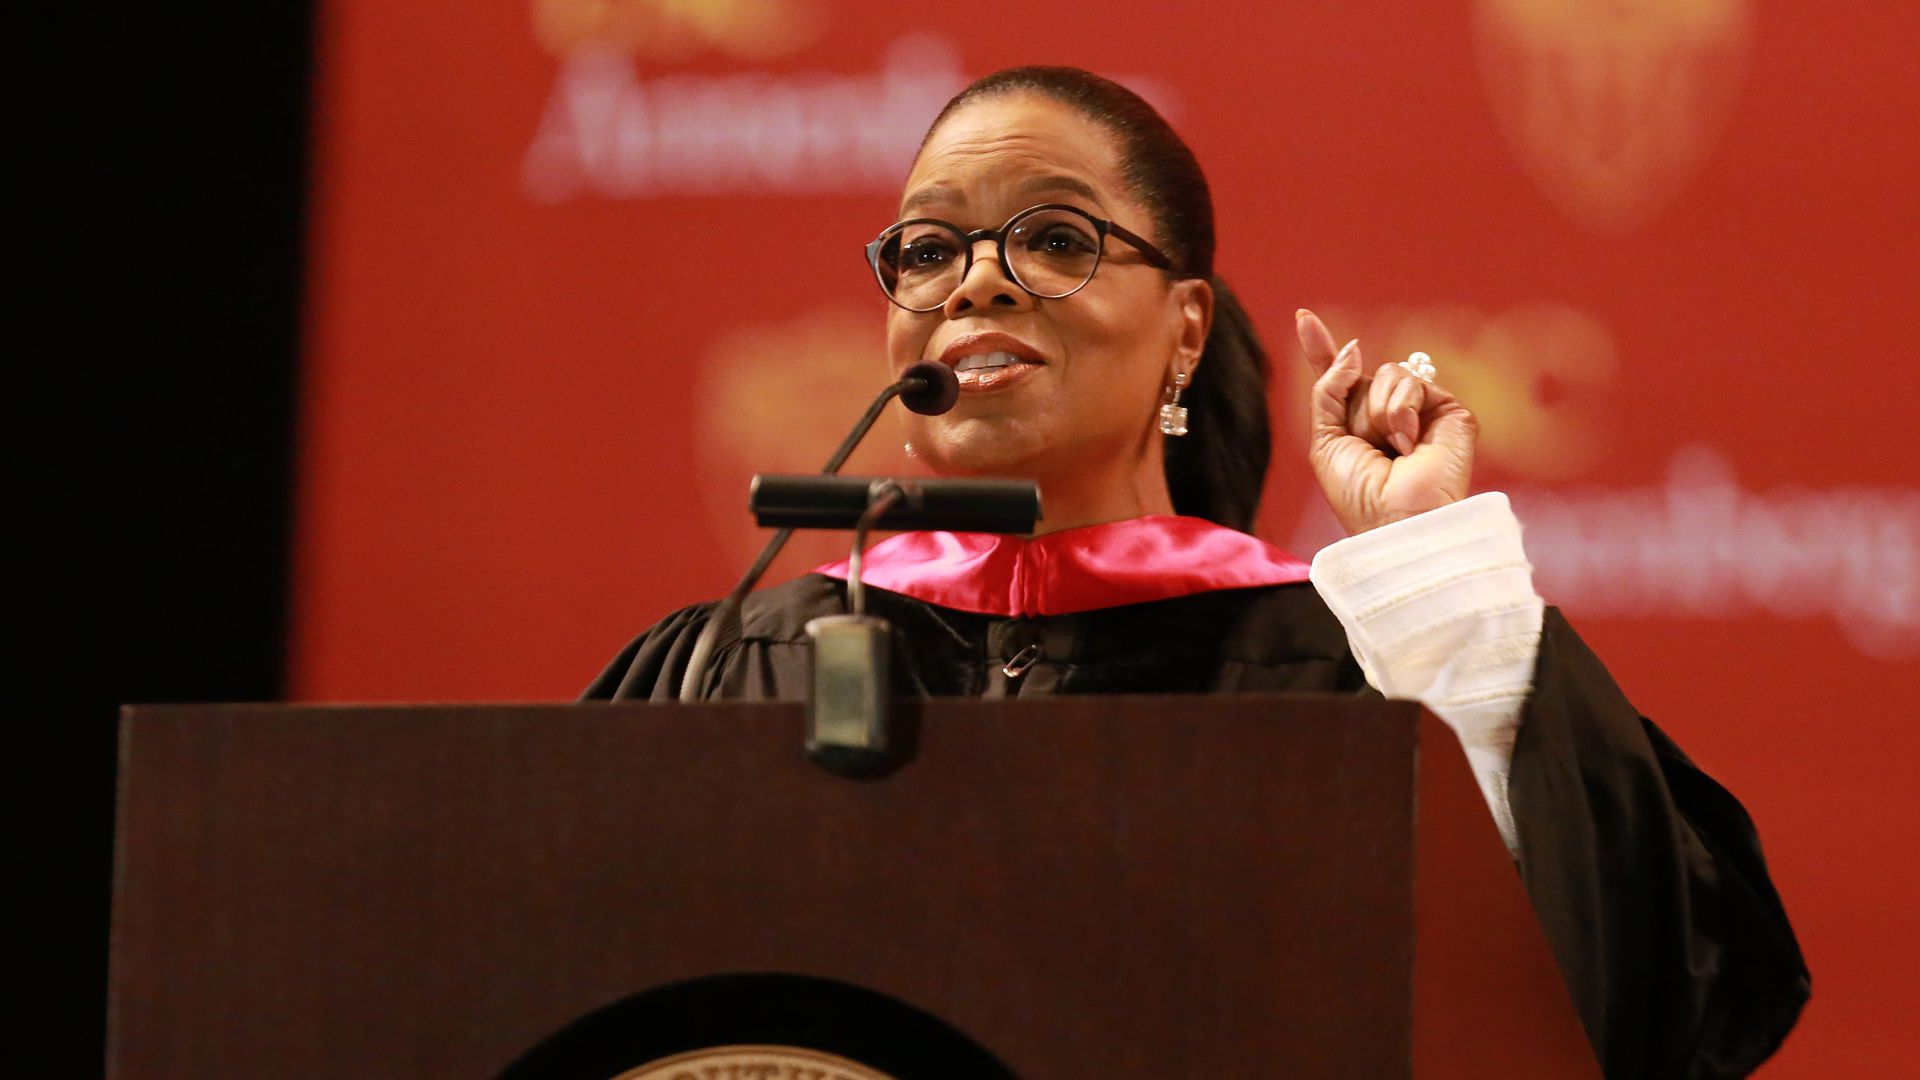 Oprah behind the podium at USC